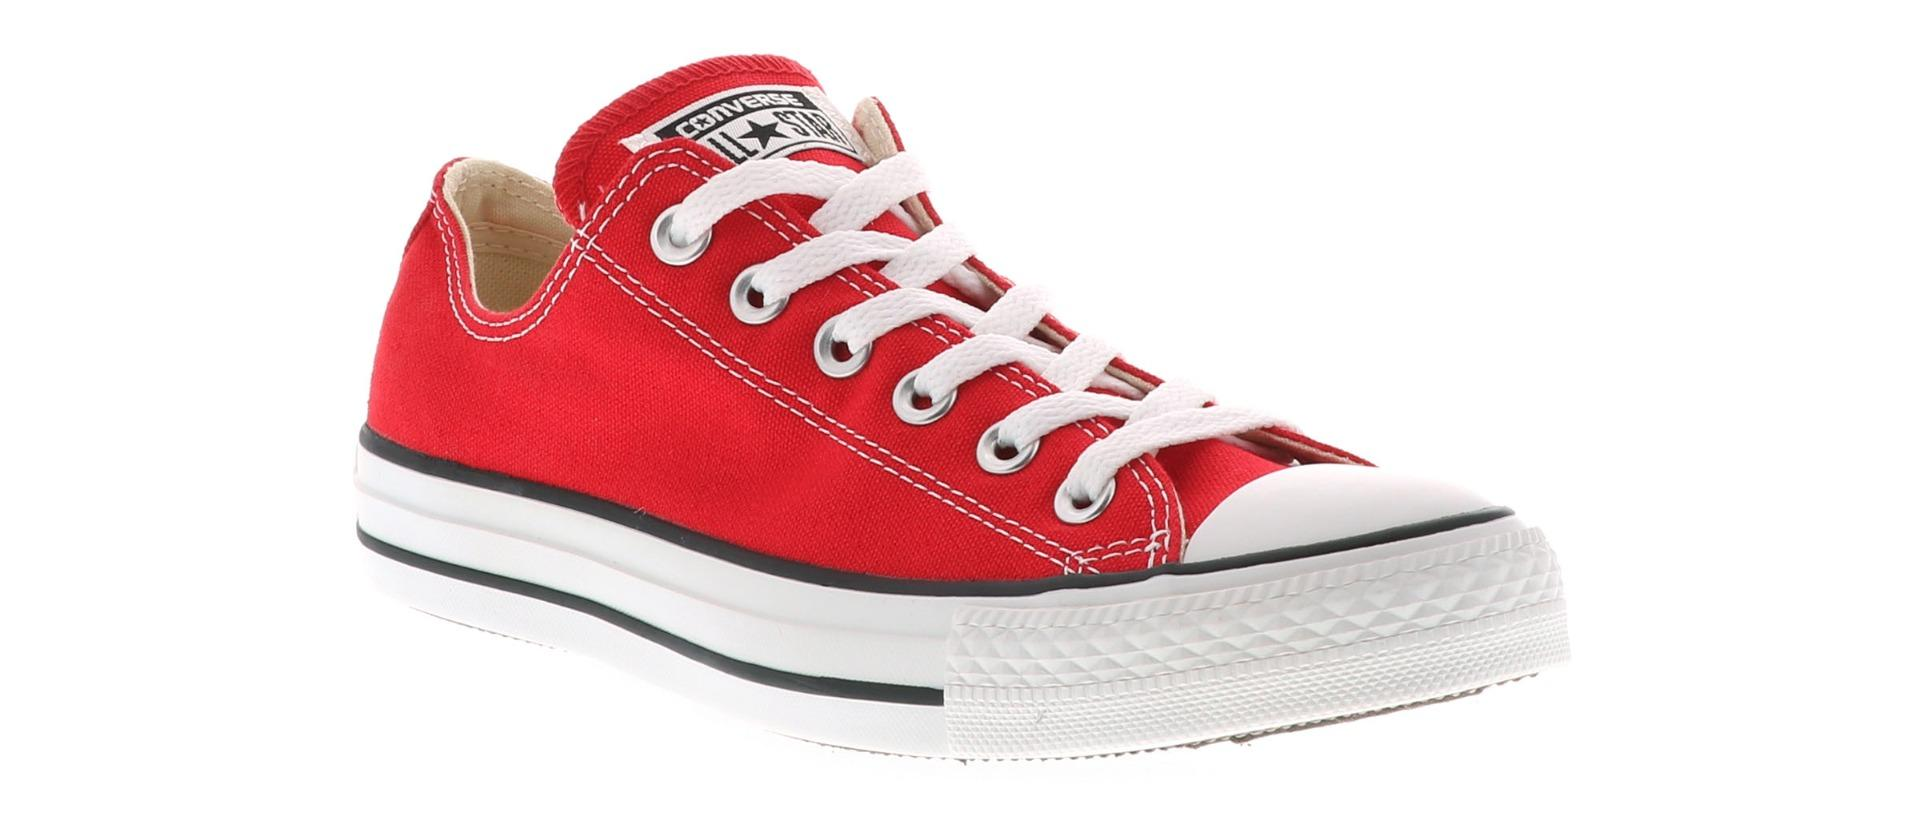 classic styles buy watch Unisex Converse Chuck Taylor All Star Ox